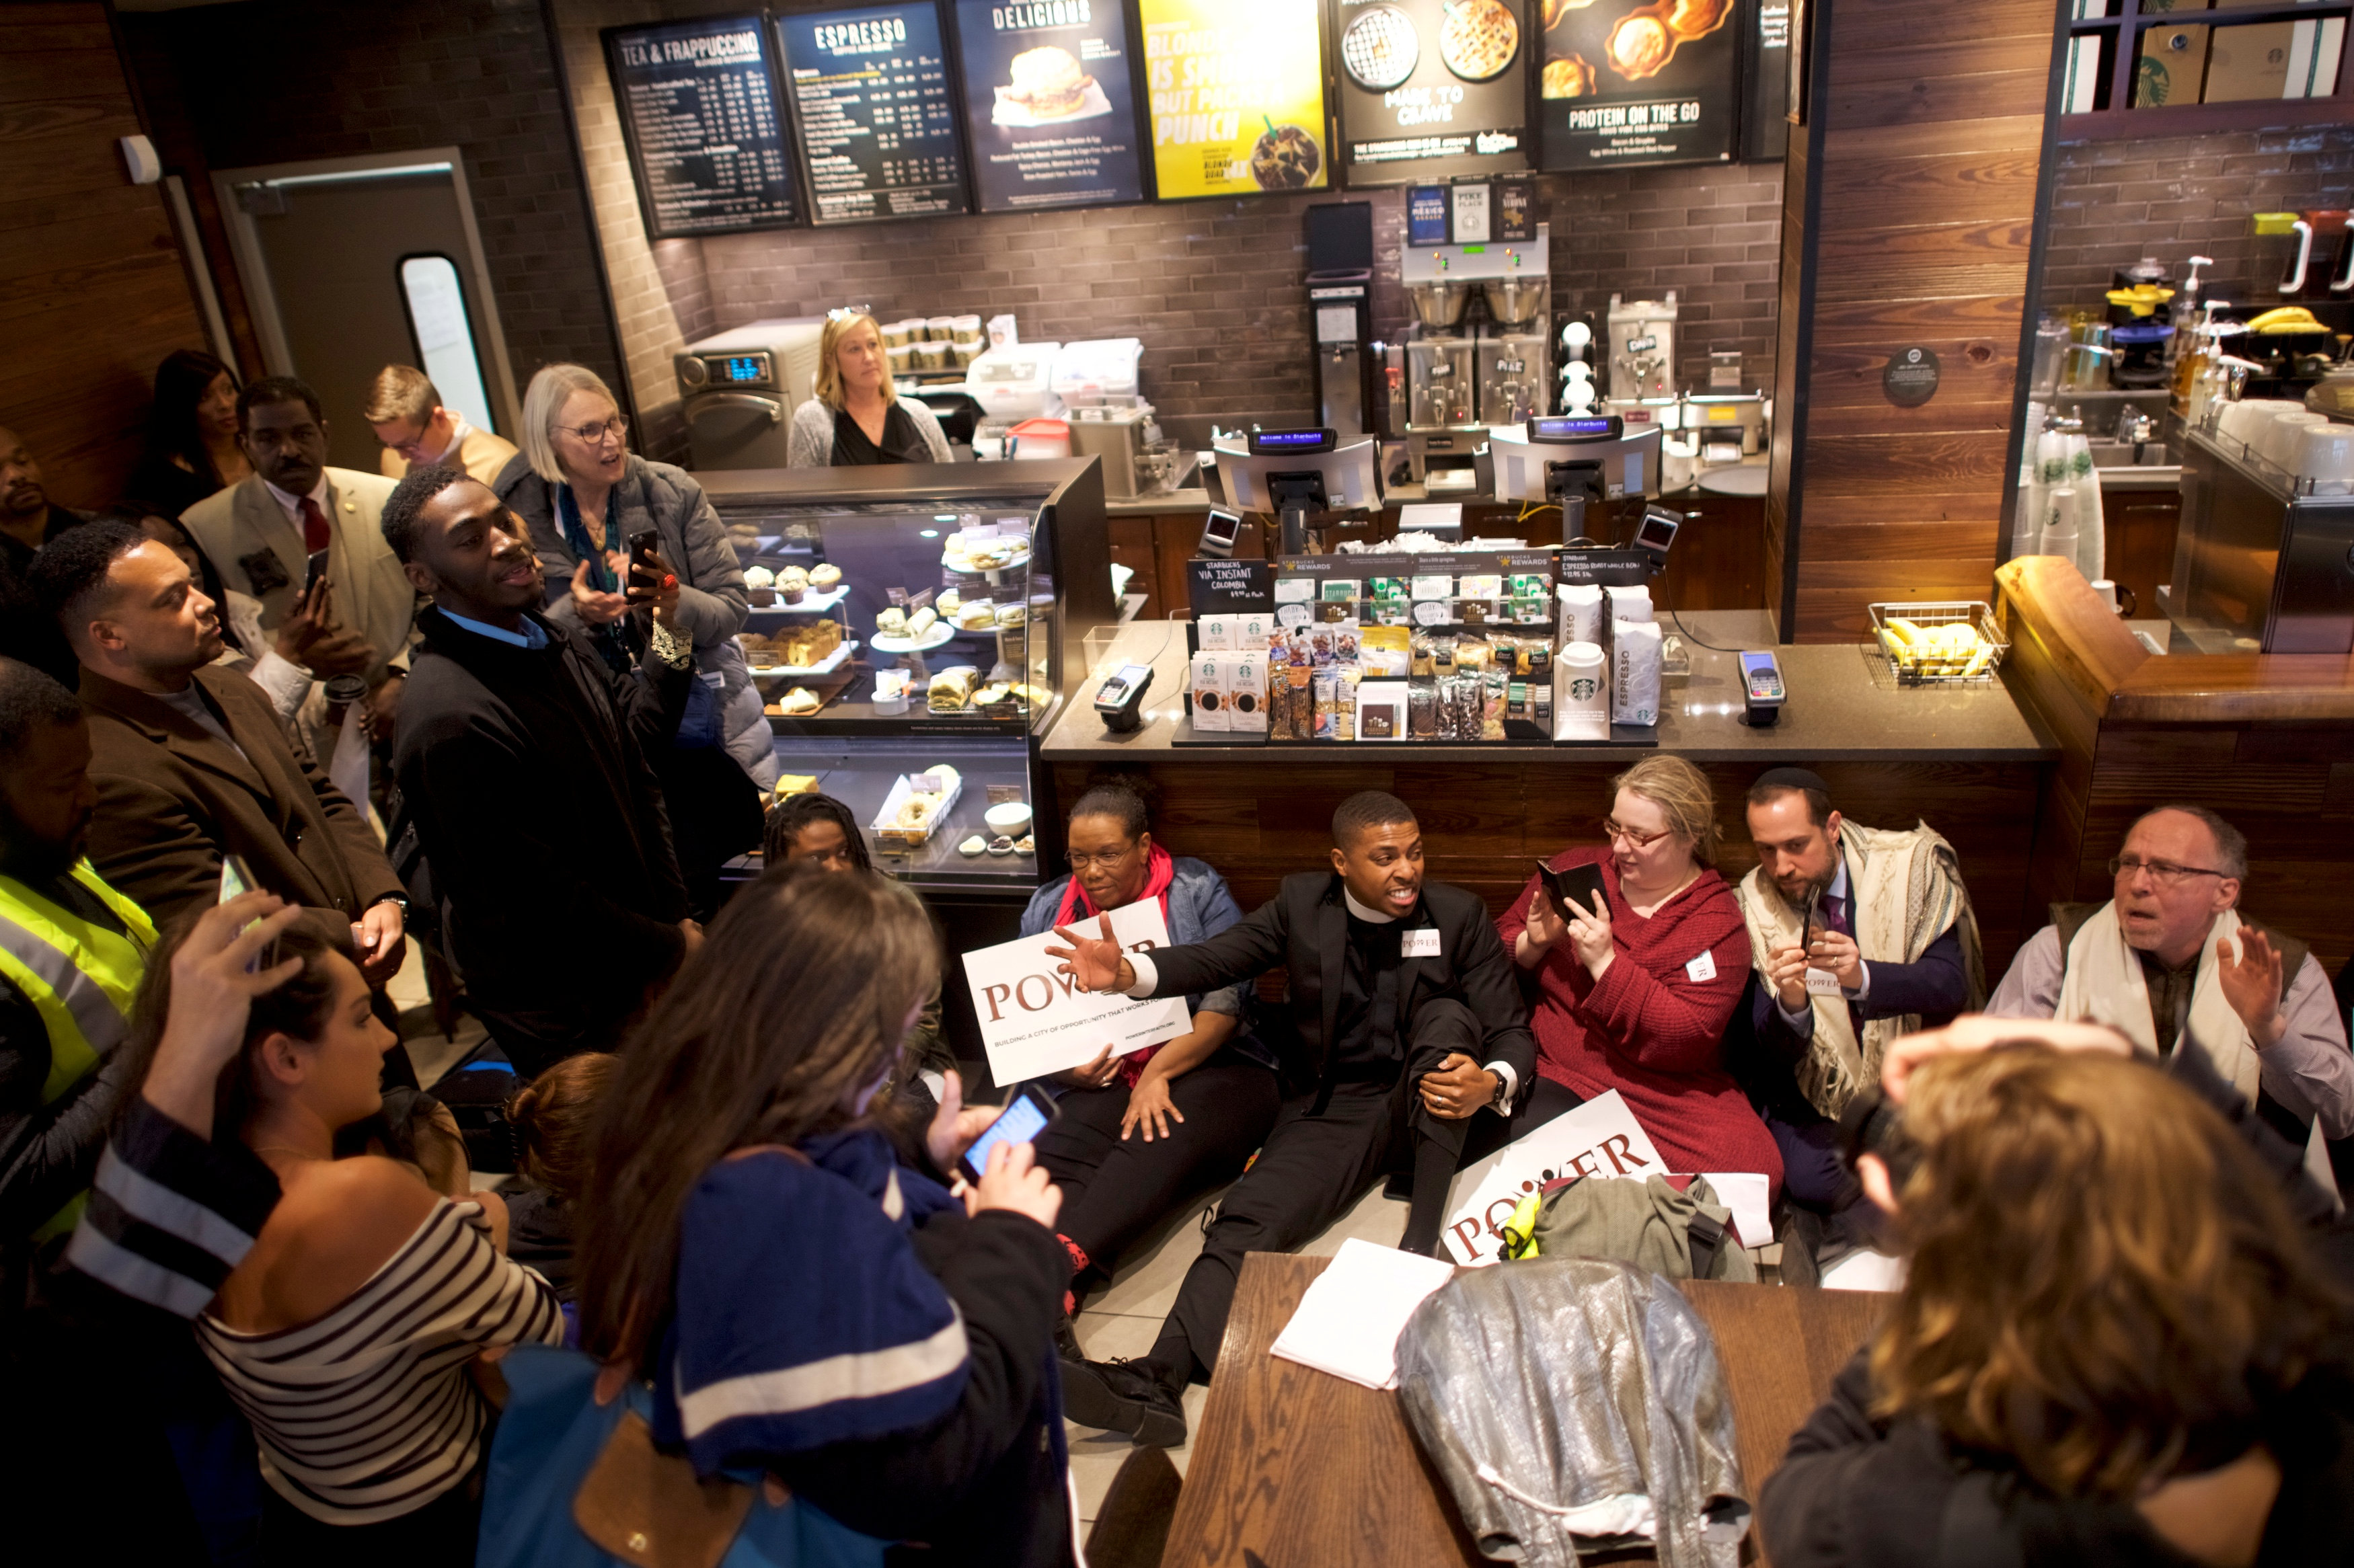 Starbucks to close 8,000 stores for racial-bias education on